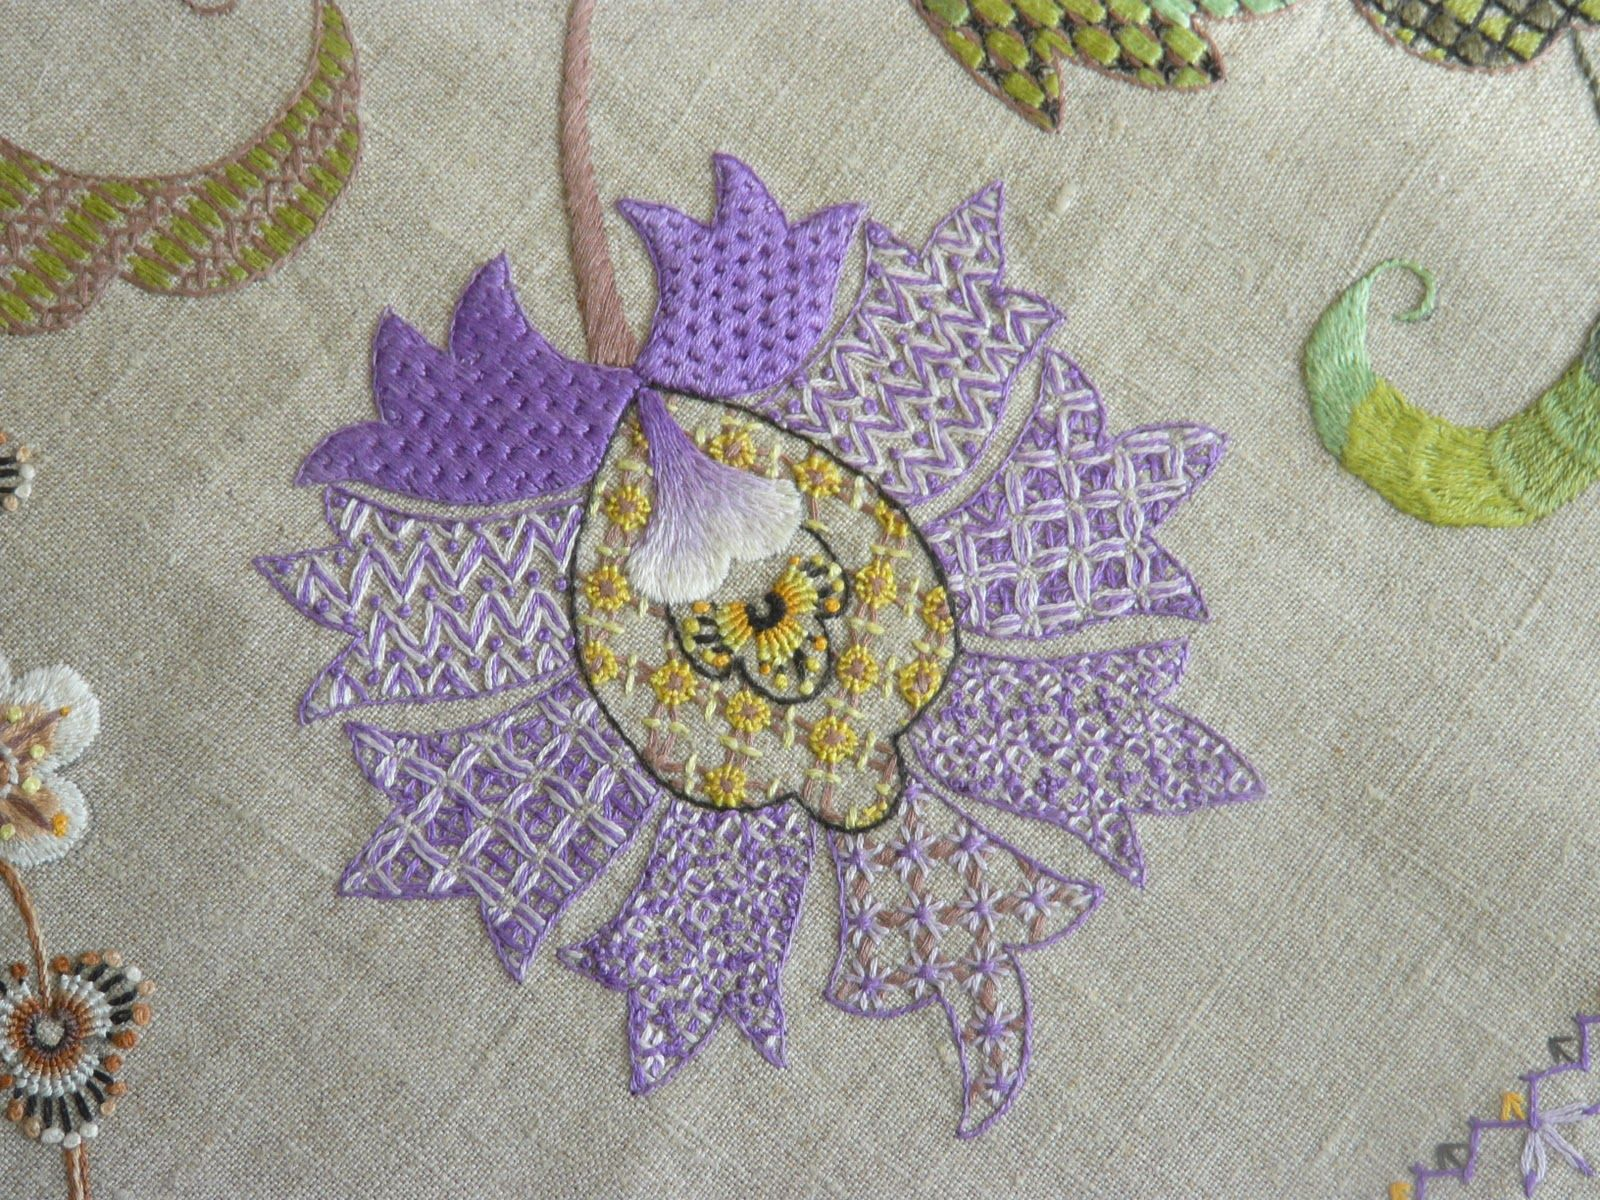 Pin By Stacy Mishina On Emdroidery Jacobean